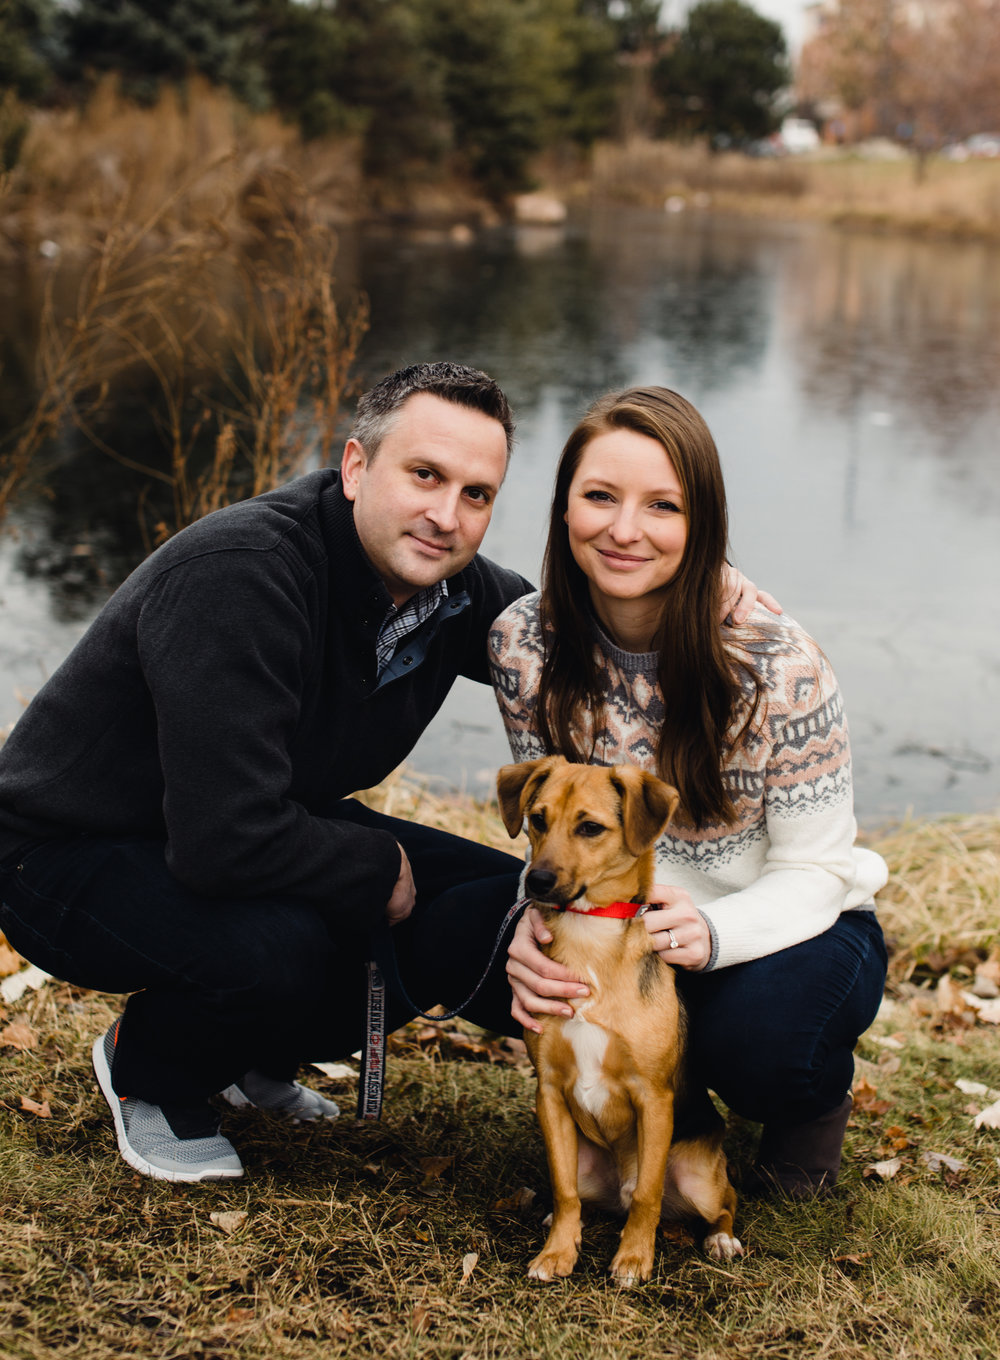 Hannah was a pleasure to work with, first, she met us at a park near our home so the session was convenient for our family. Hannah was also patient with our pup (and us) to get some great photos where we all look good, which isn't easy! We were very happy with the quality of the photography and have received many compliments on the photos. Her photos will be displayed in our home for many years to come.  -Tara & Ben Wright